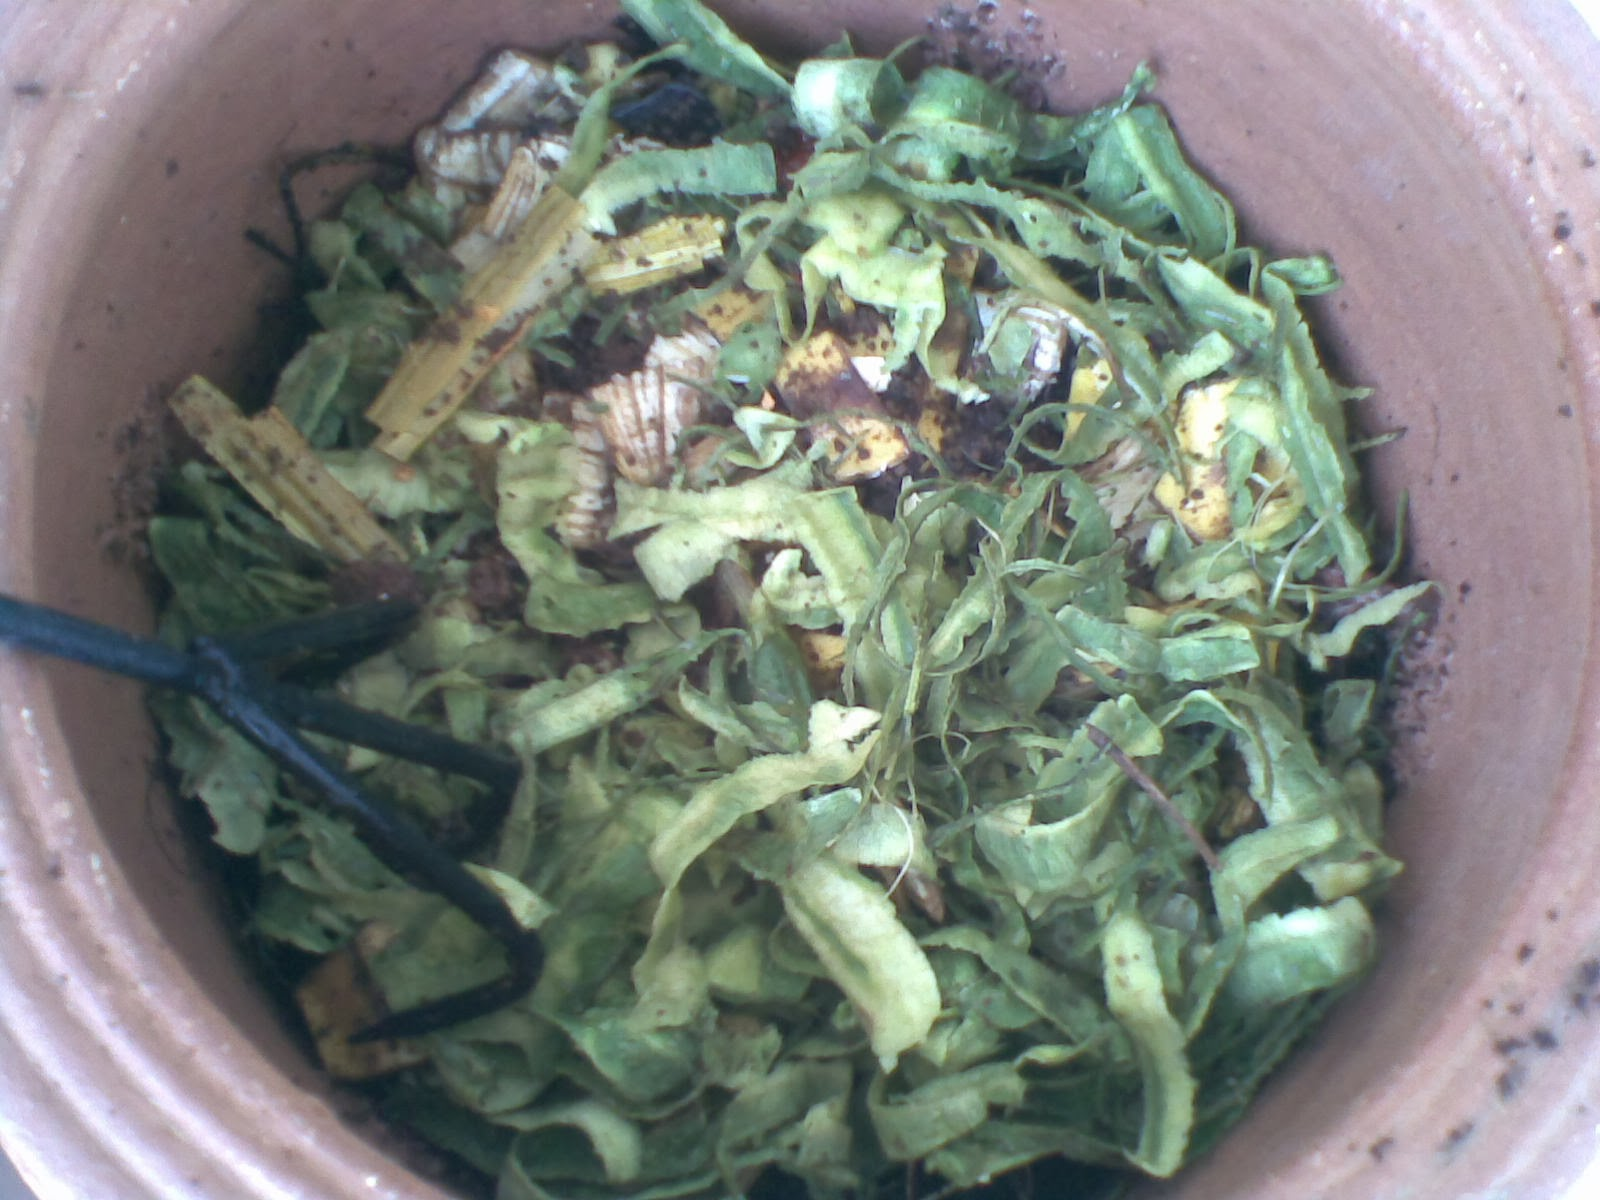 Kitchen Waste in Pot